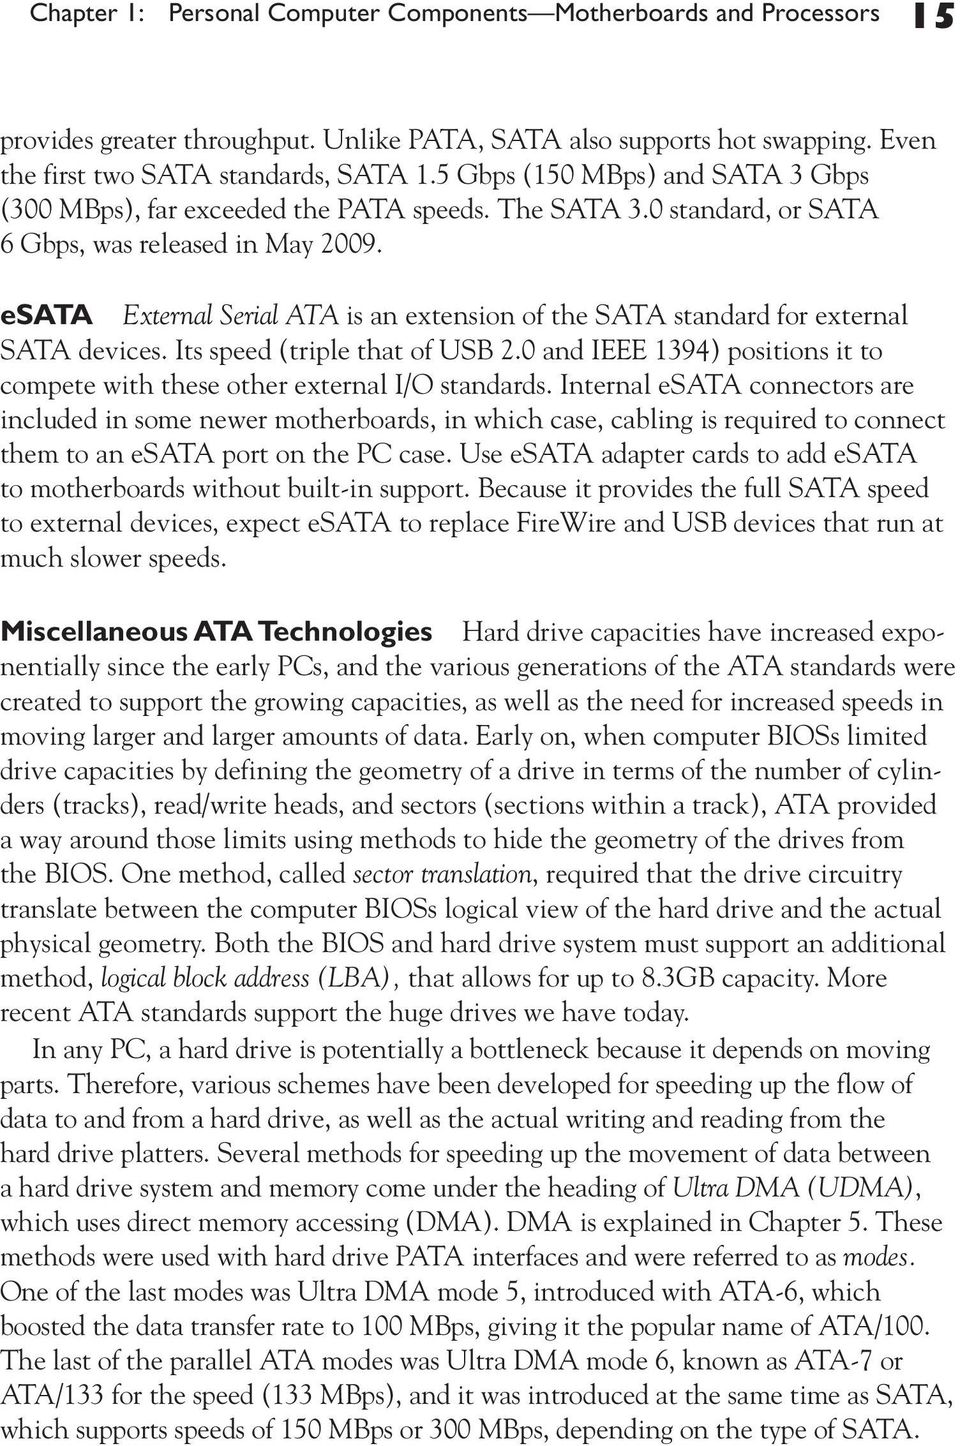 Personal Computer Components Motherboards And Processors Pdf Motherboard Diagrams A Deeper Understanding Of The Parts Esata External Serial Ata Is An Extension Sata Standard For Devices